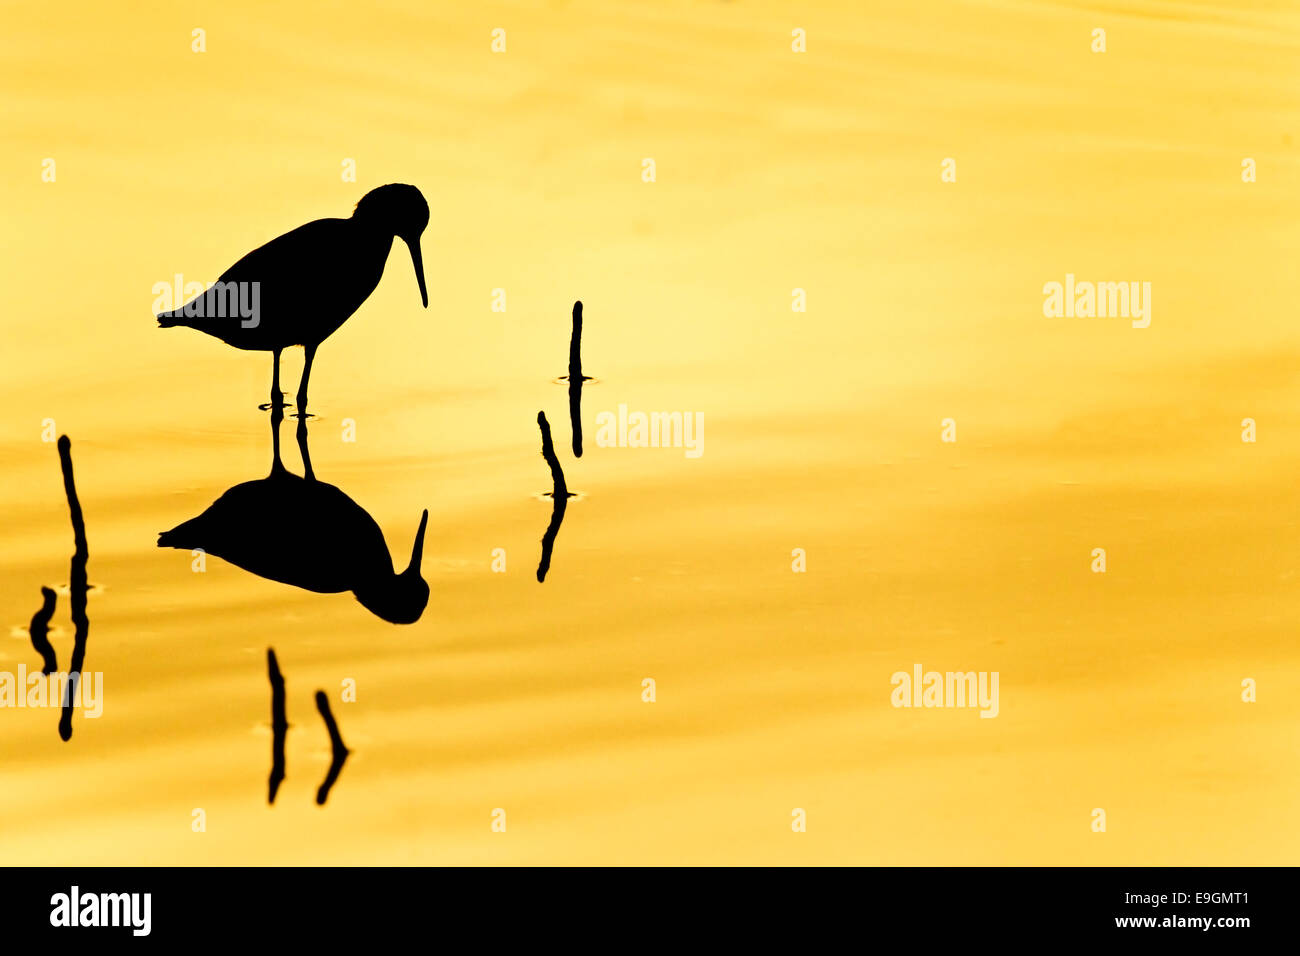 Silhouette reflection of a redshank (Tringa totanus) at sunset in a coastal wetland / tropical mangrove forest - Stock Image